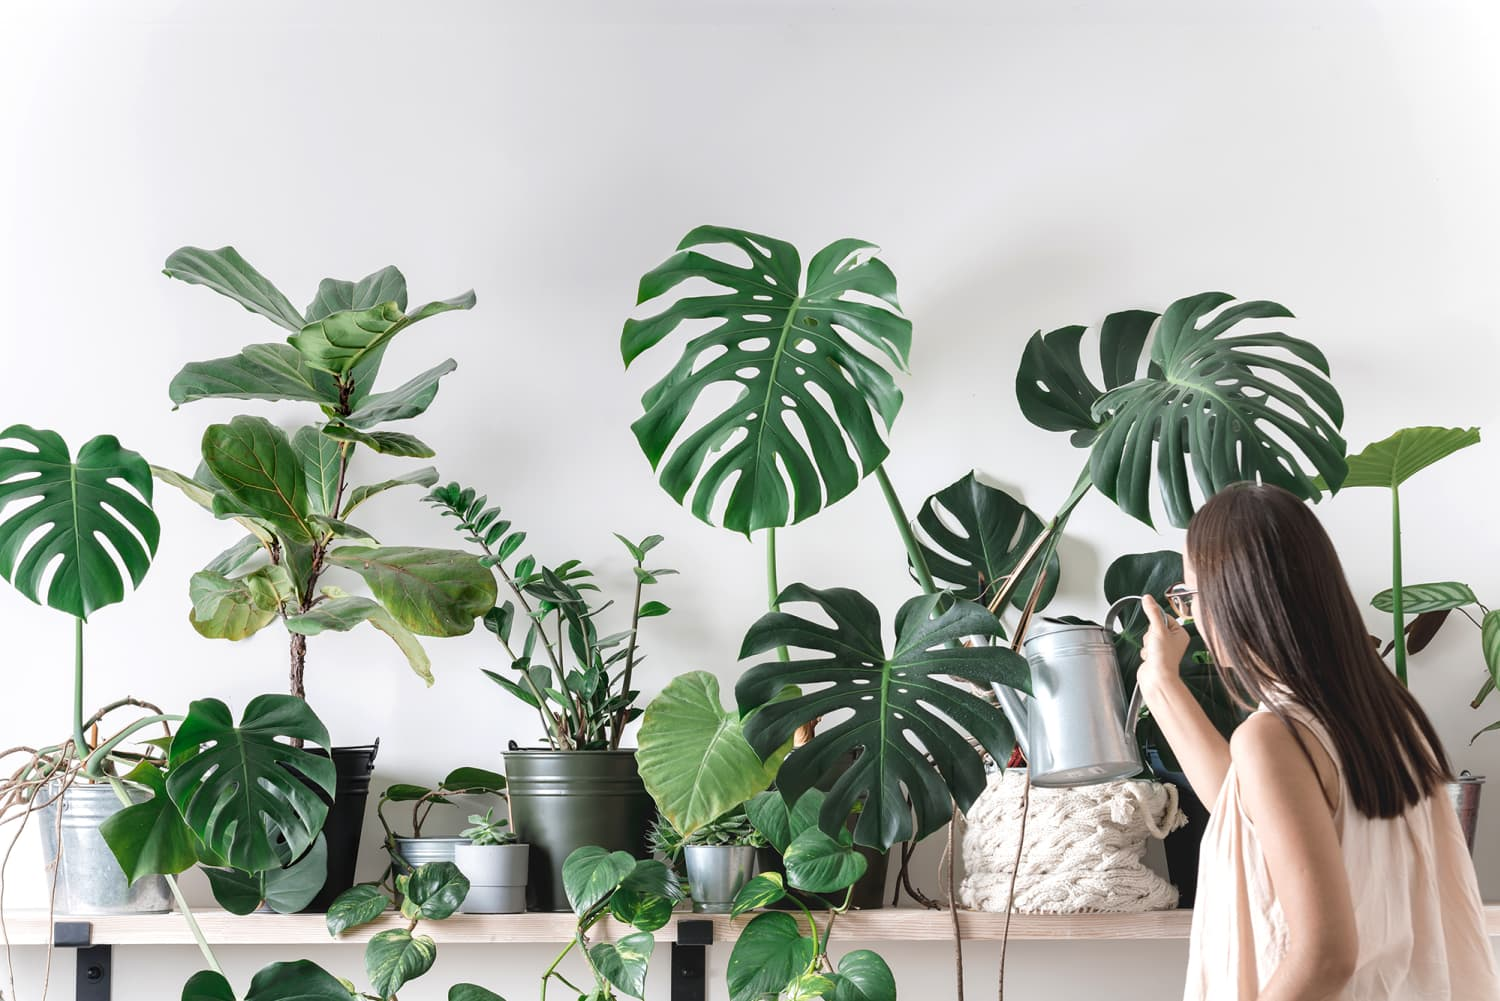 These Are the 9 Most Popular Houseplants on Instagram, According to Survey